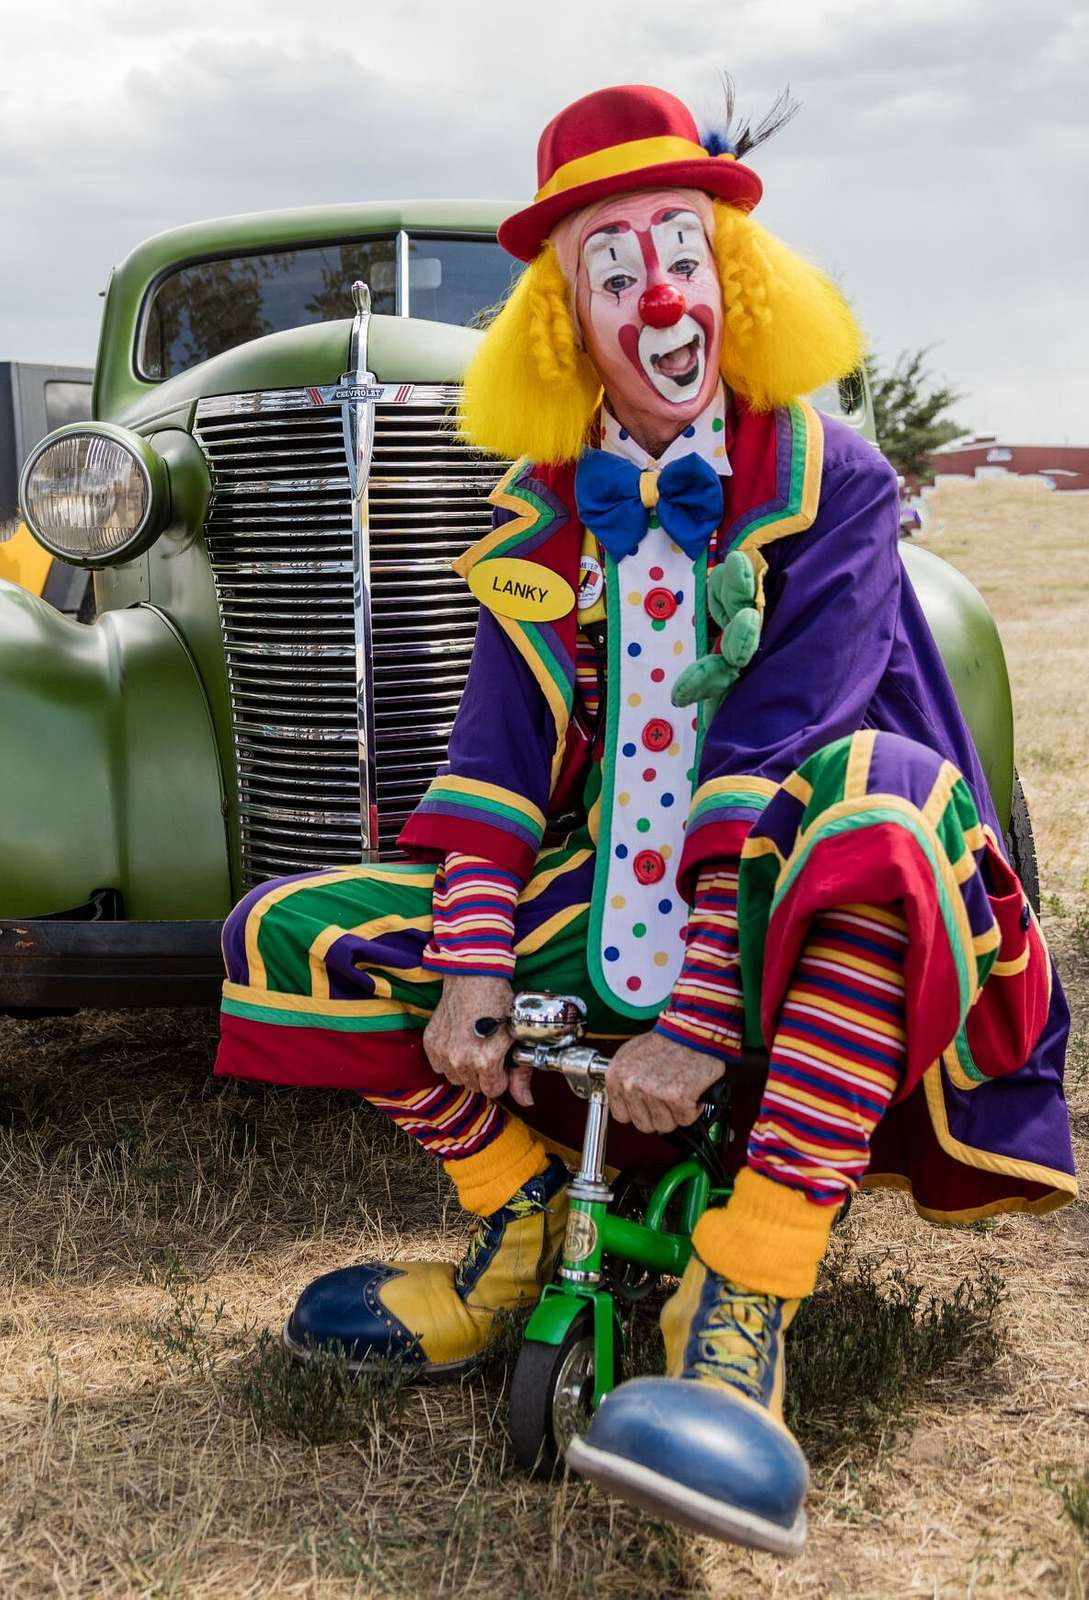 Danny Kollaja, better known as Lanky the Clown, acting up at the Wyoming State Fair in Douglas